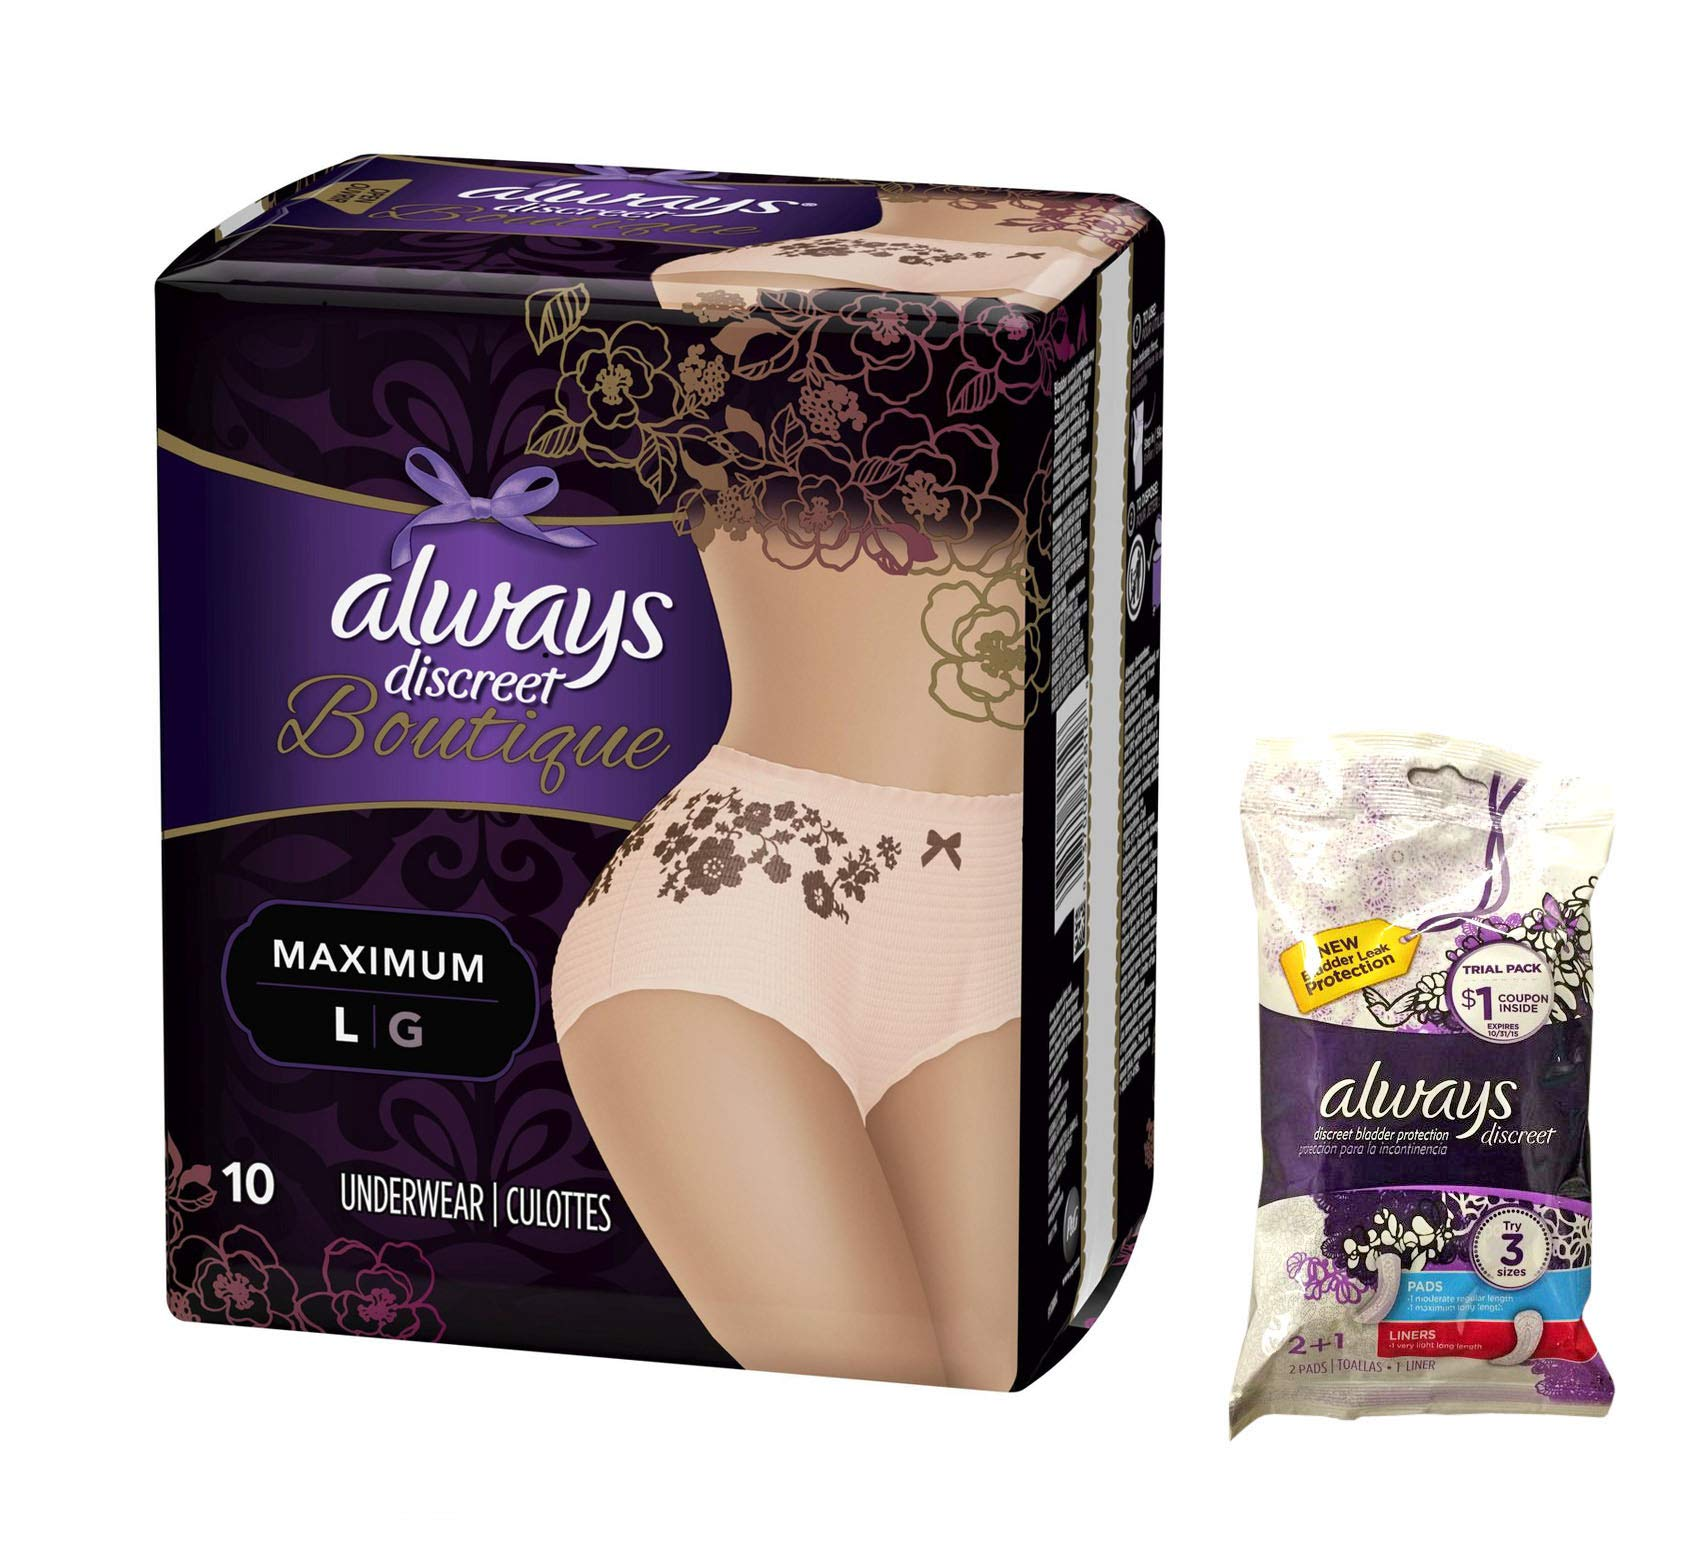 Always Discreet Boutique Incontinence Underwear & Pads - Maximum Protection L - 9 Disposable - Peach - Large - Trial Pack of Incontinence Pads Included